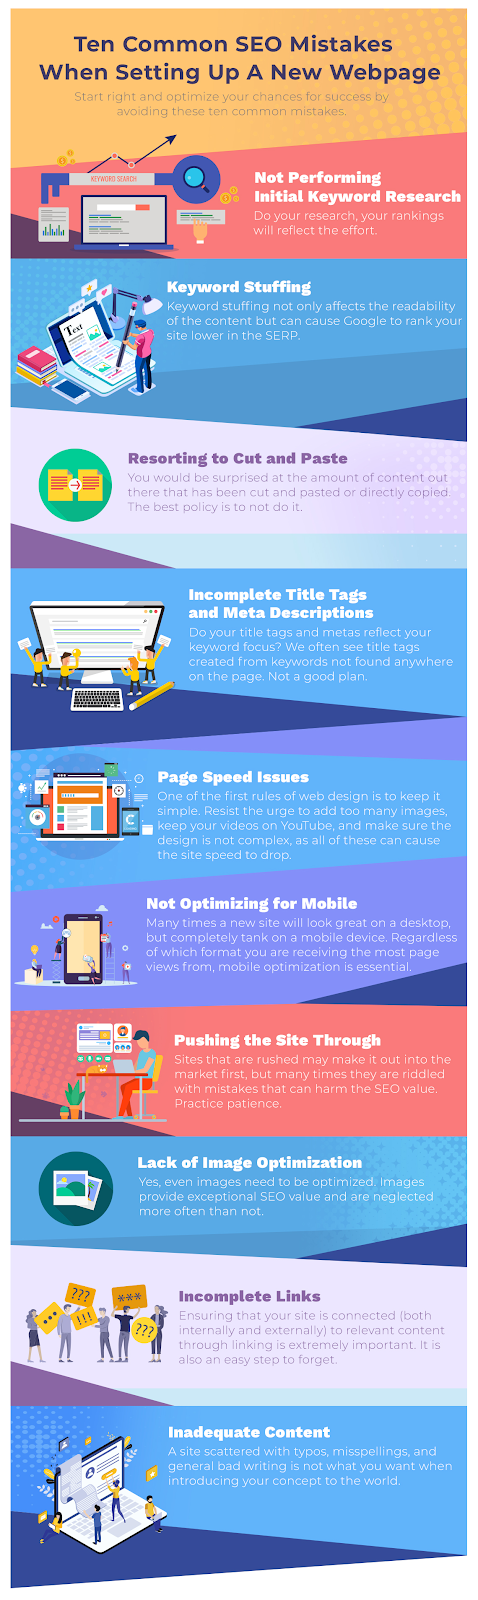 an infographic of all the steps listed below